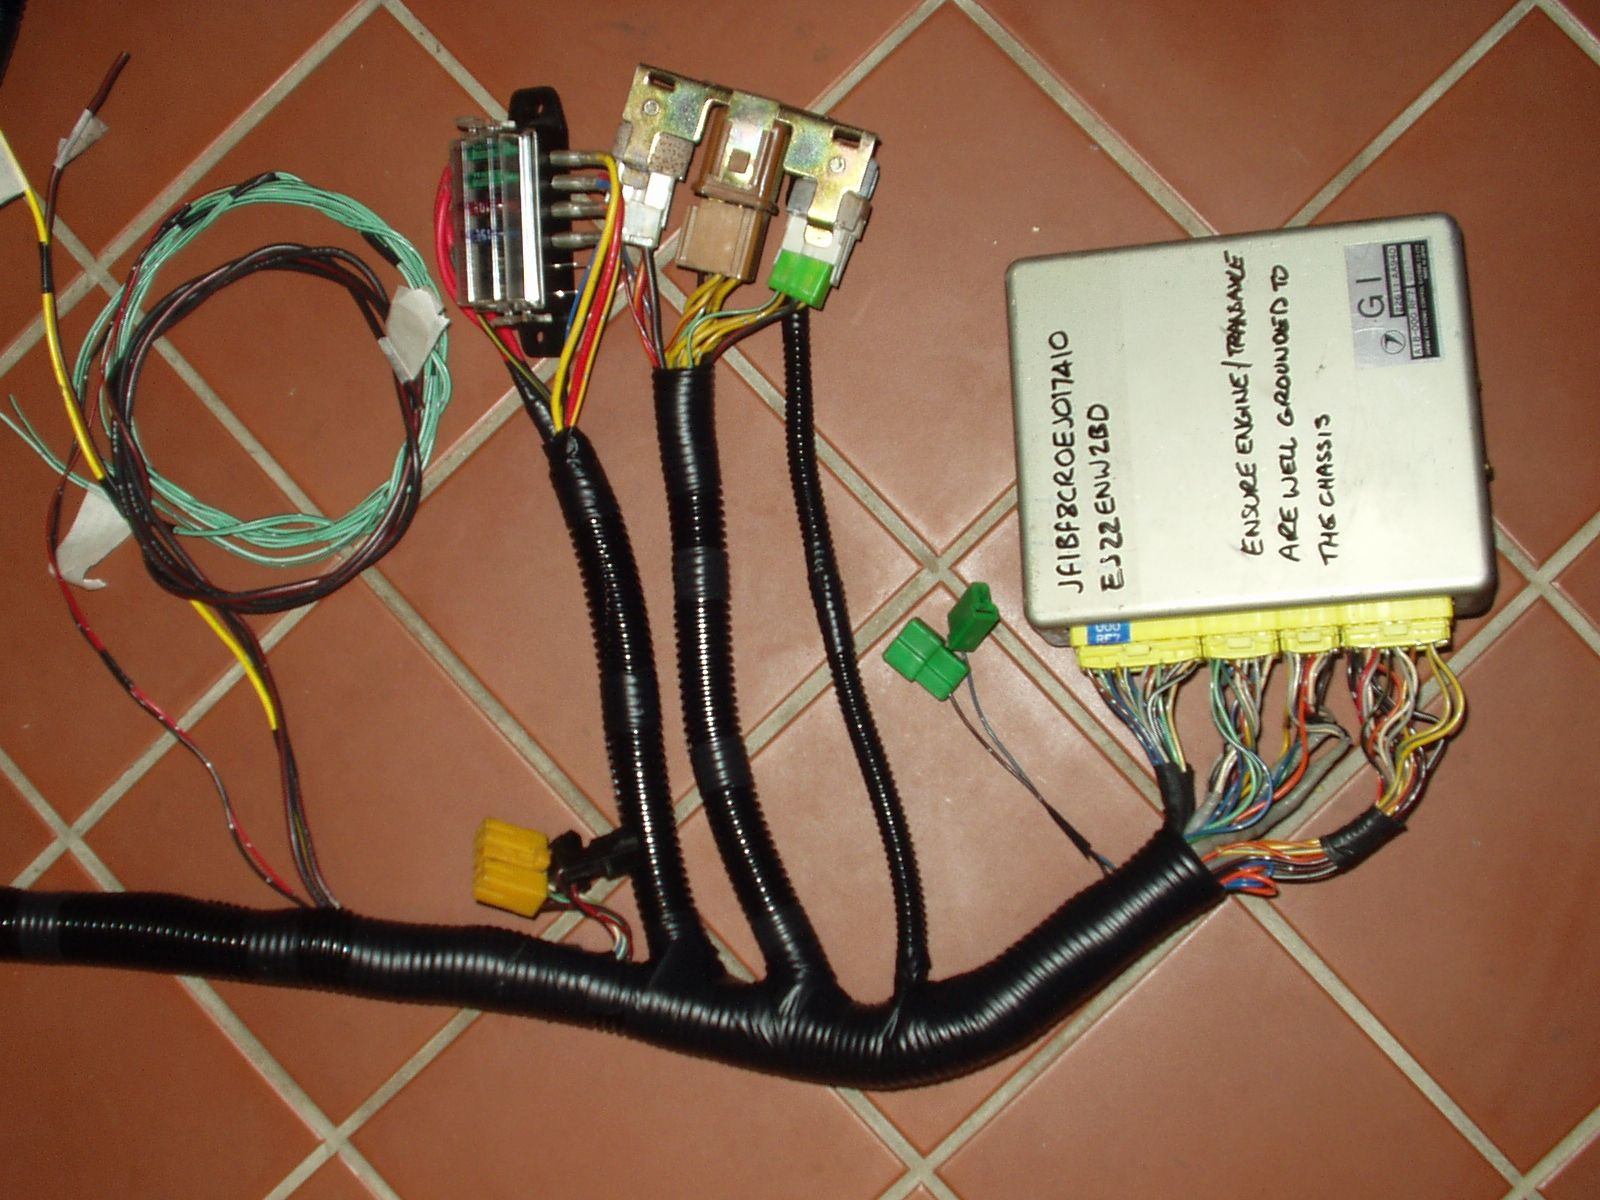 A Subaru engine wiring harness after RJES have done their ... on vw bug wiring, universal fog light kits, vw thing lift kit, vw dune buggy wiring harness, vw wiring connectors, vw thing wiring harness, vw cc fog light harness, vw beetle wiring harness, vw wiring diagrams, vw wire harness, vw bus wiring harness, radio control sailboat kits,